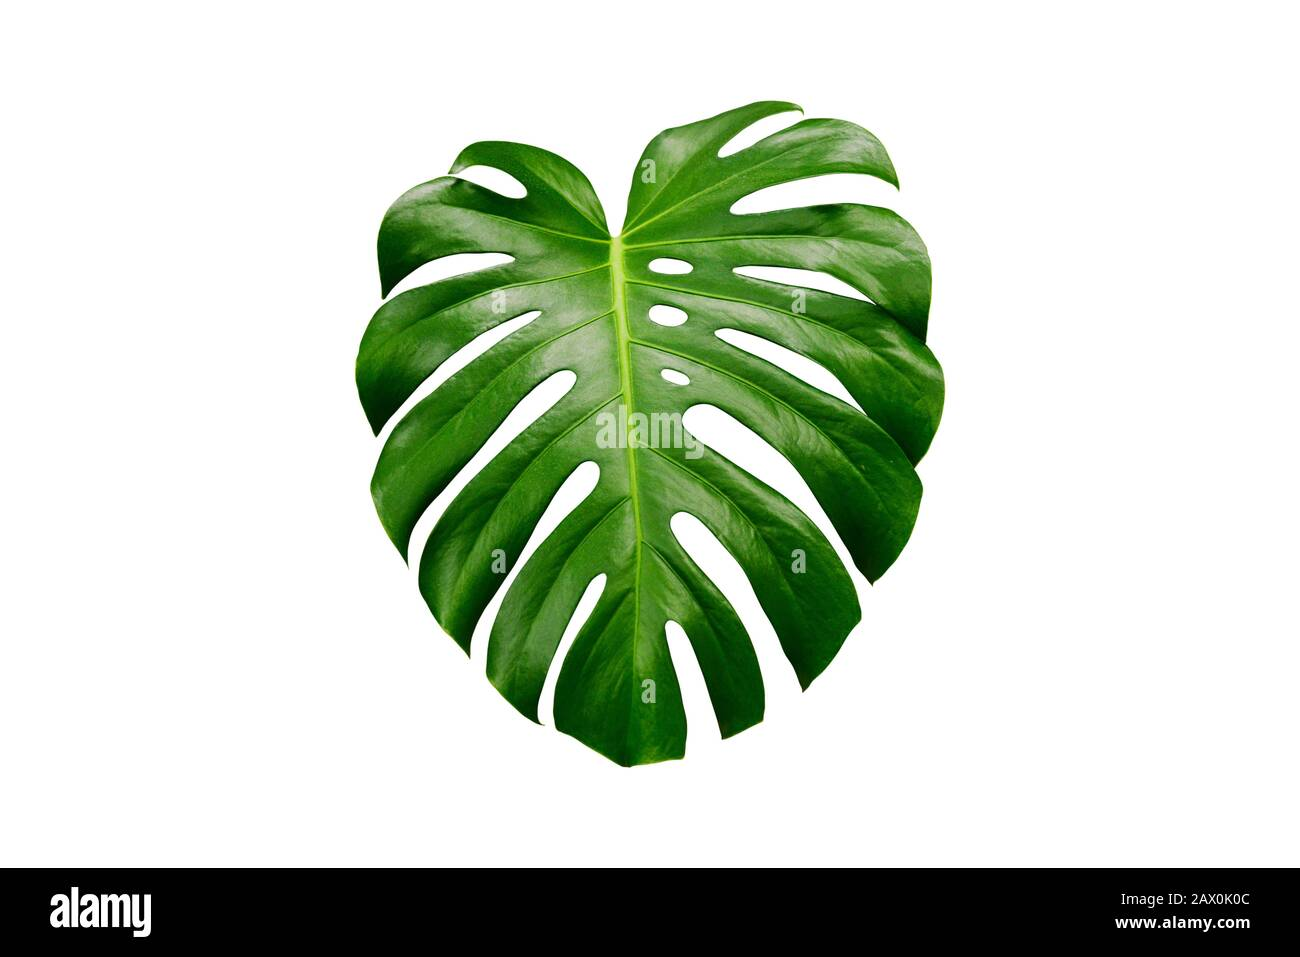 Tropical Leaf Monstera On A White Background A Single Green Leaf Of An Exotic Plant Stock Photo Alamy This post includes a little story on monstera leaf and a hello, friends!! https www alamy com tropical leaf monstera on a white background a single green leaf of an exotic plant image342992956 html